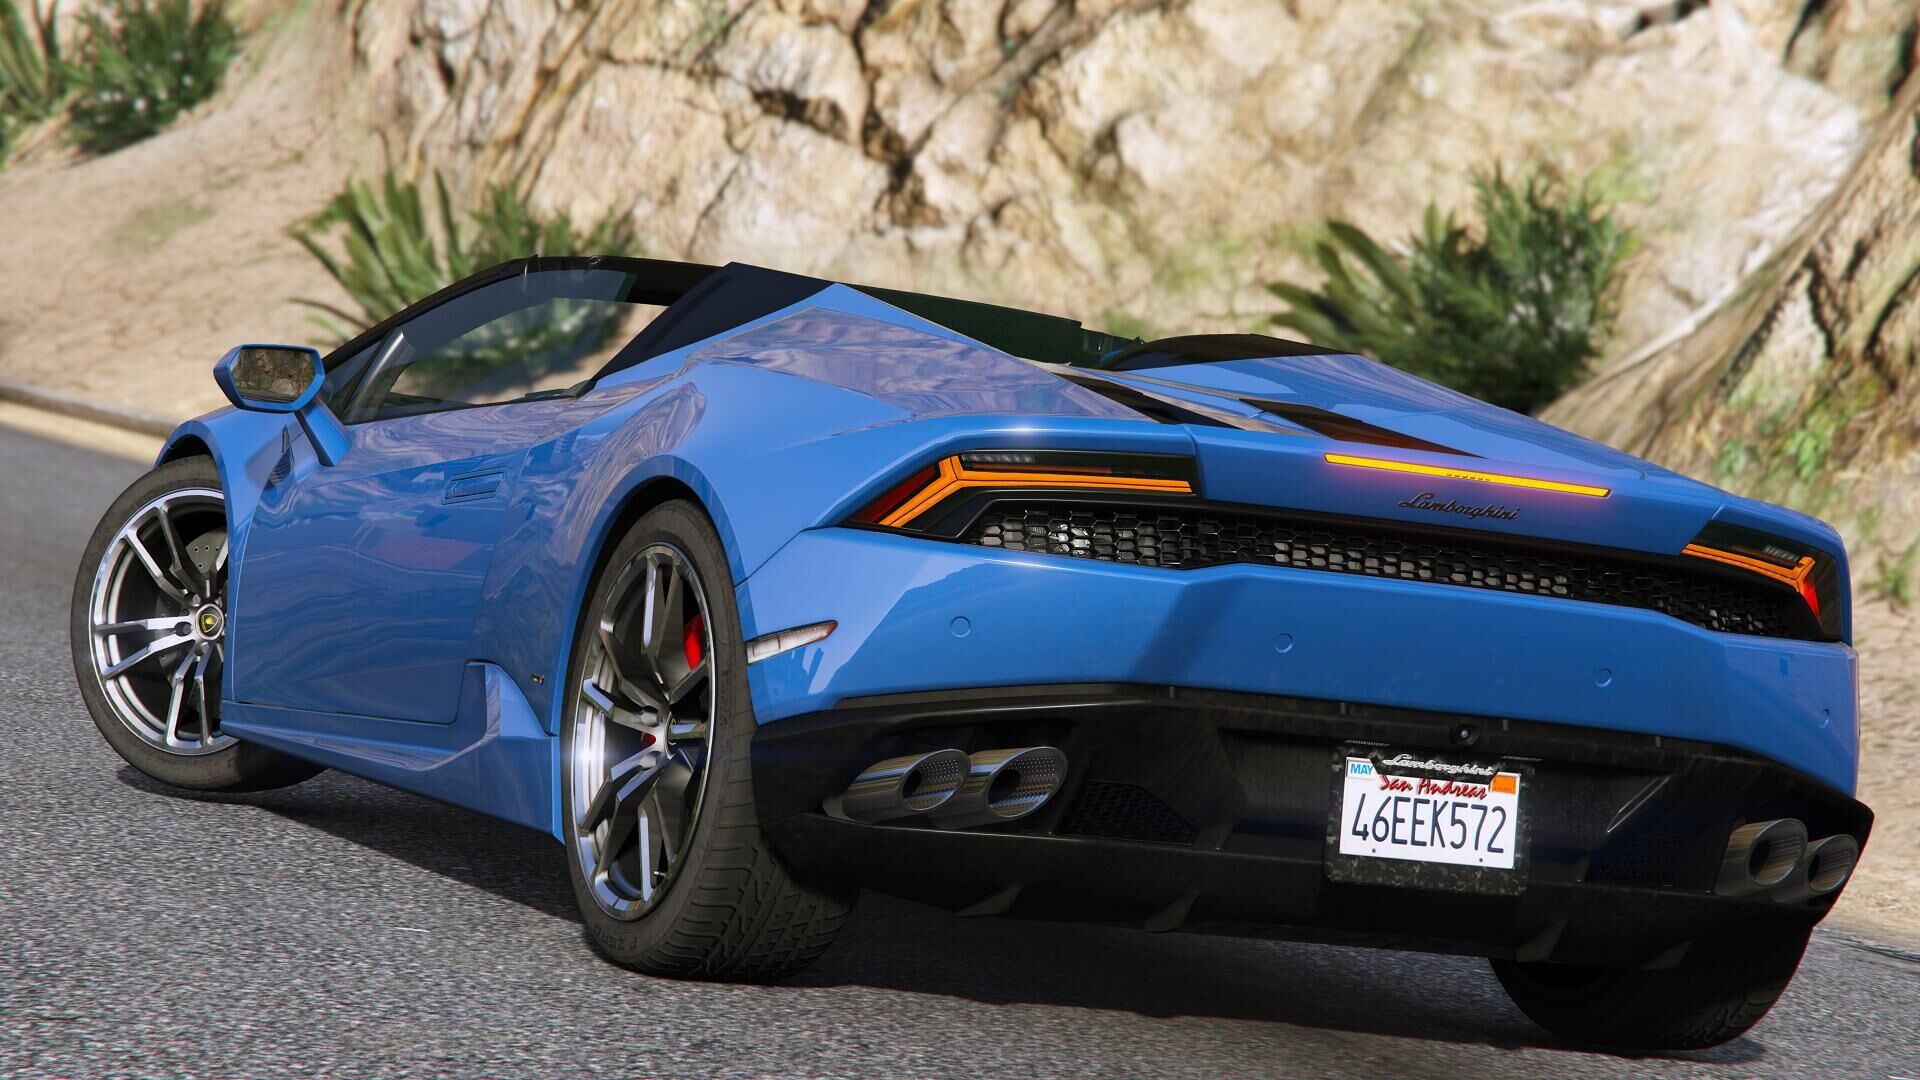 2017 lamborghini huracan spyder [add-on | wipers] - gta5-mods